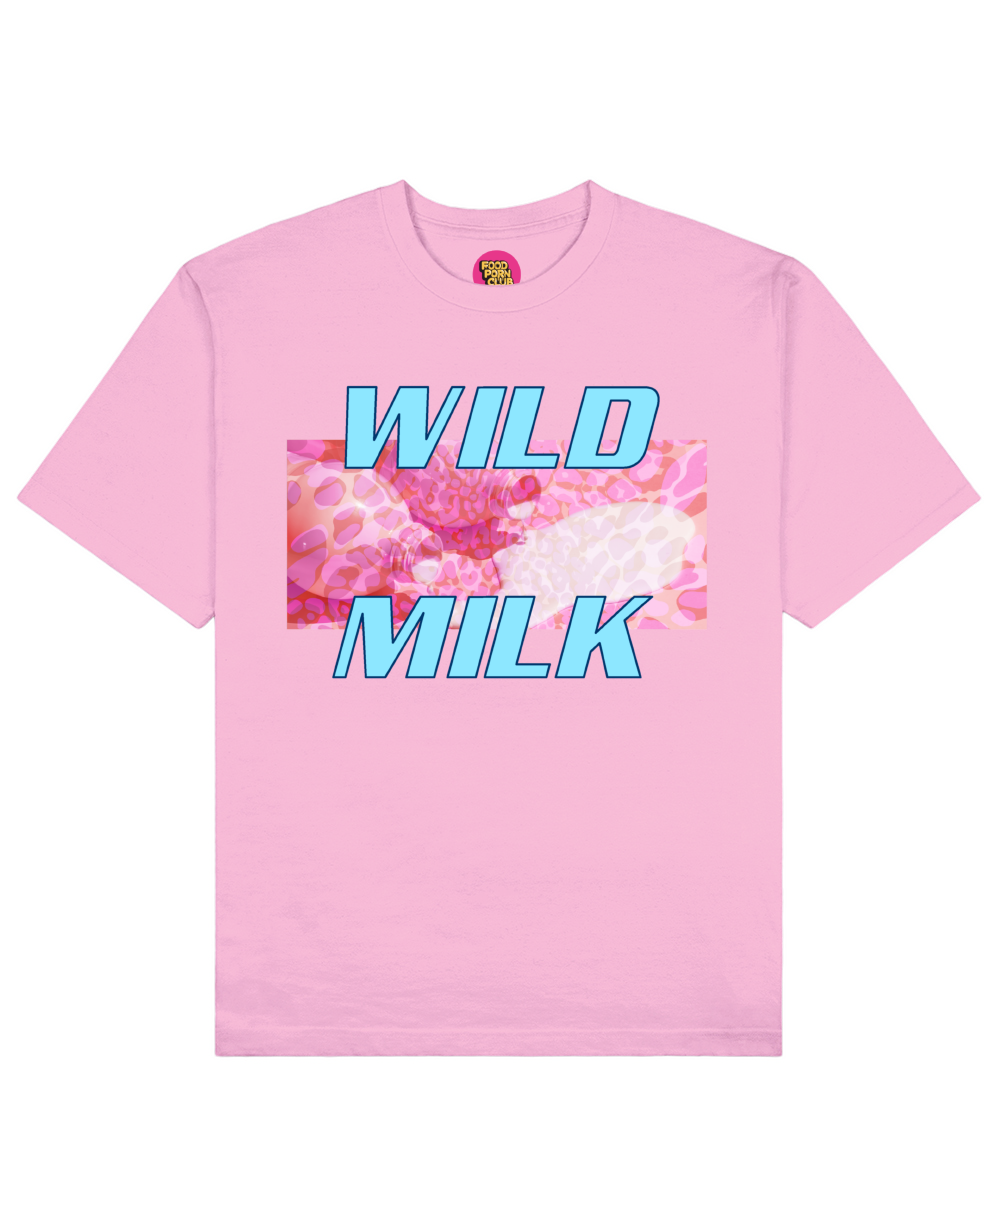 Wild Milk Print T-Shirt in Pink - T-Shirts - FOOD PORN CLUB - BRANMA